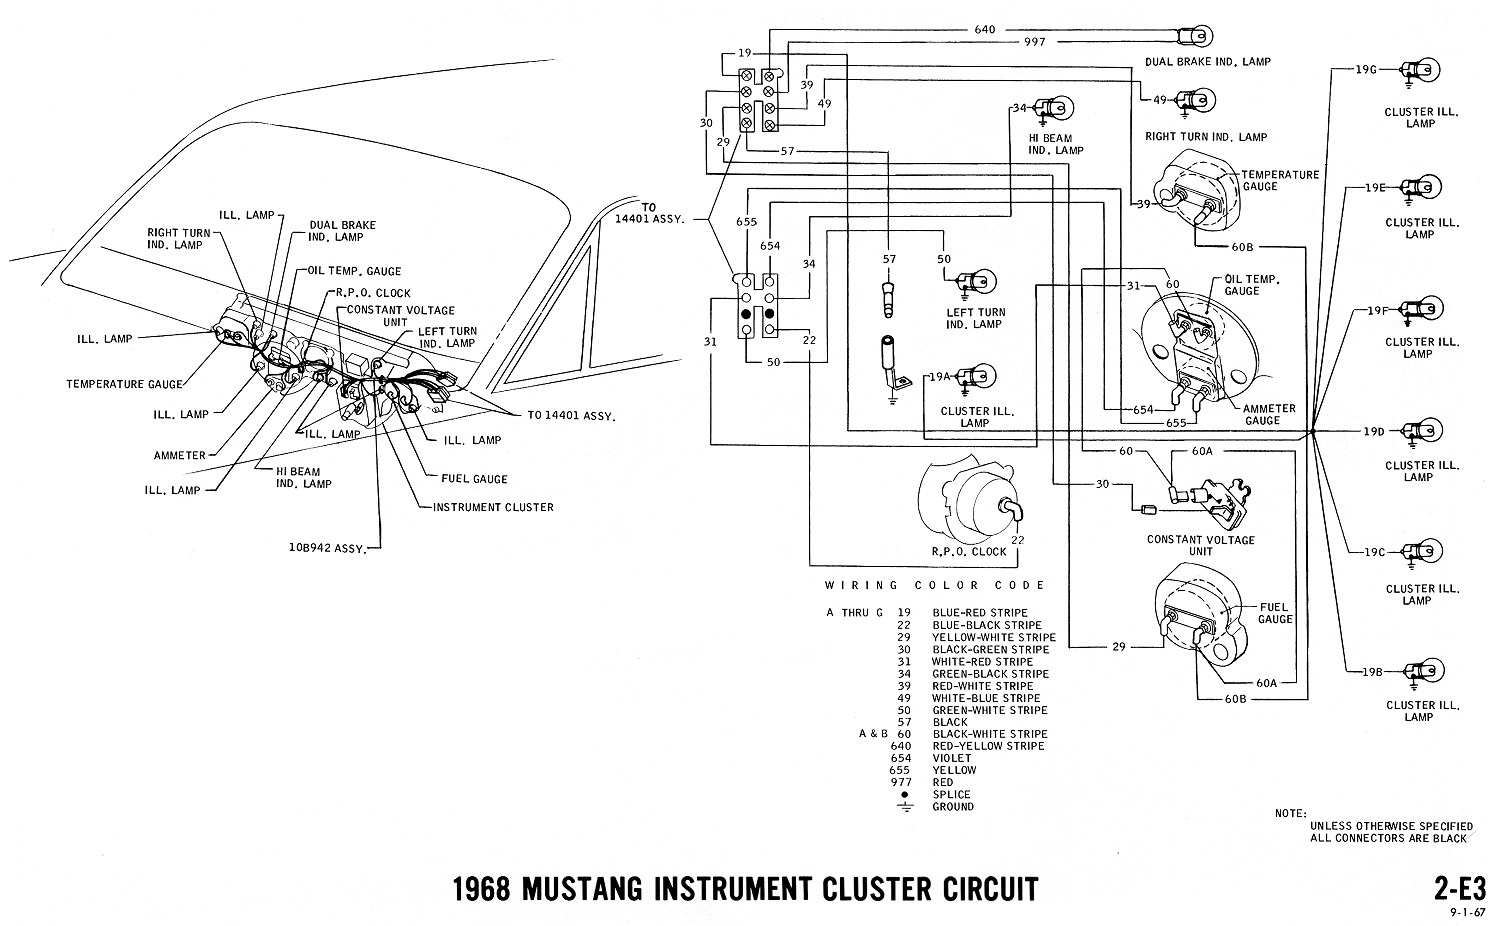 1970 Ford Mustang Heater Wiring Diagram Online Schematic 2007 Impala 1969 Control Data 1967 Gauge